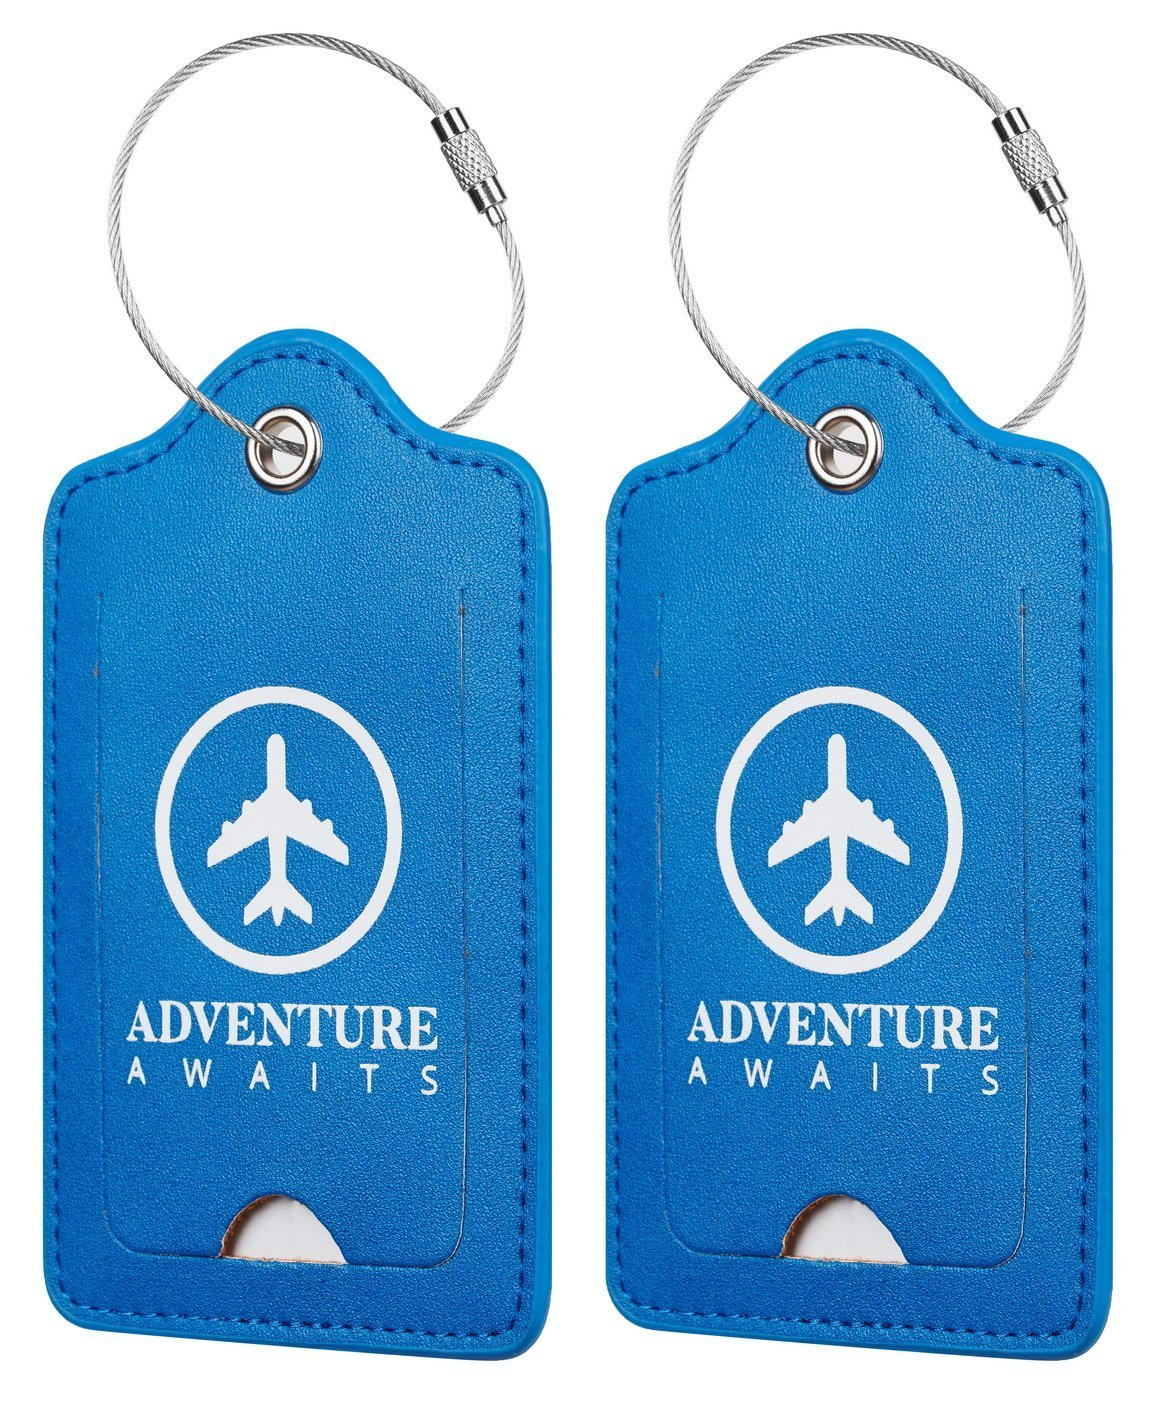 Chelmon Leather Luggage Tags Baggage Bag Instrument Tag 2 Pcs Set (Blue Unforgettable 6215)